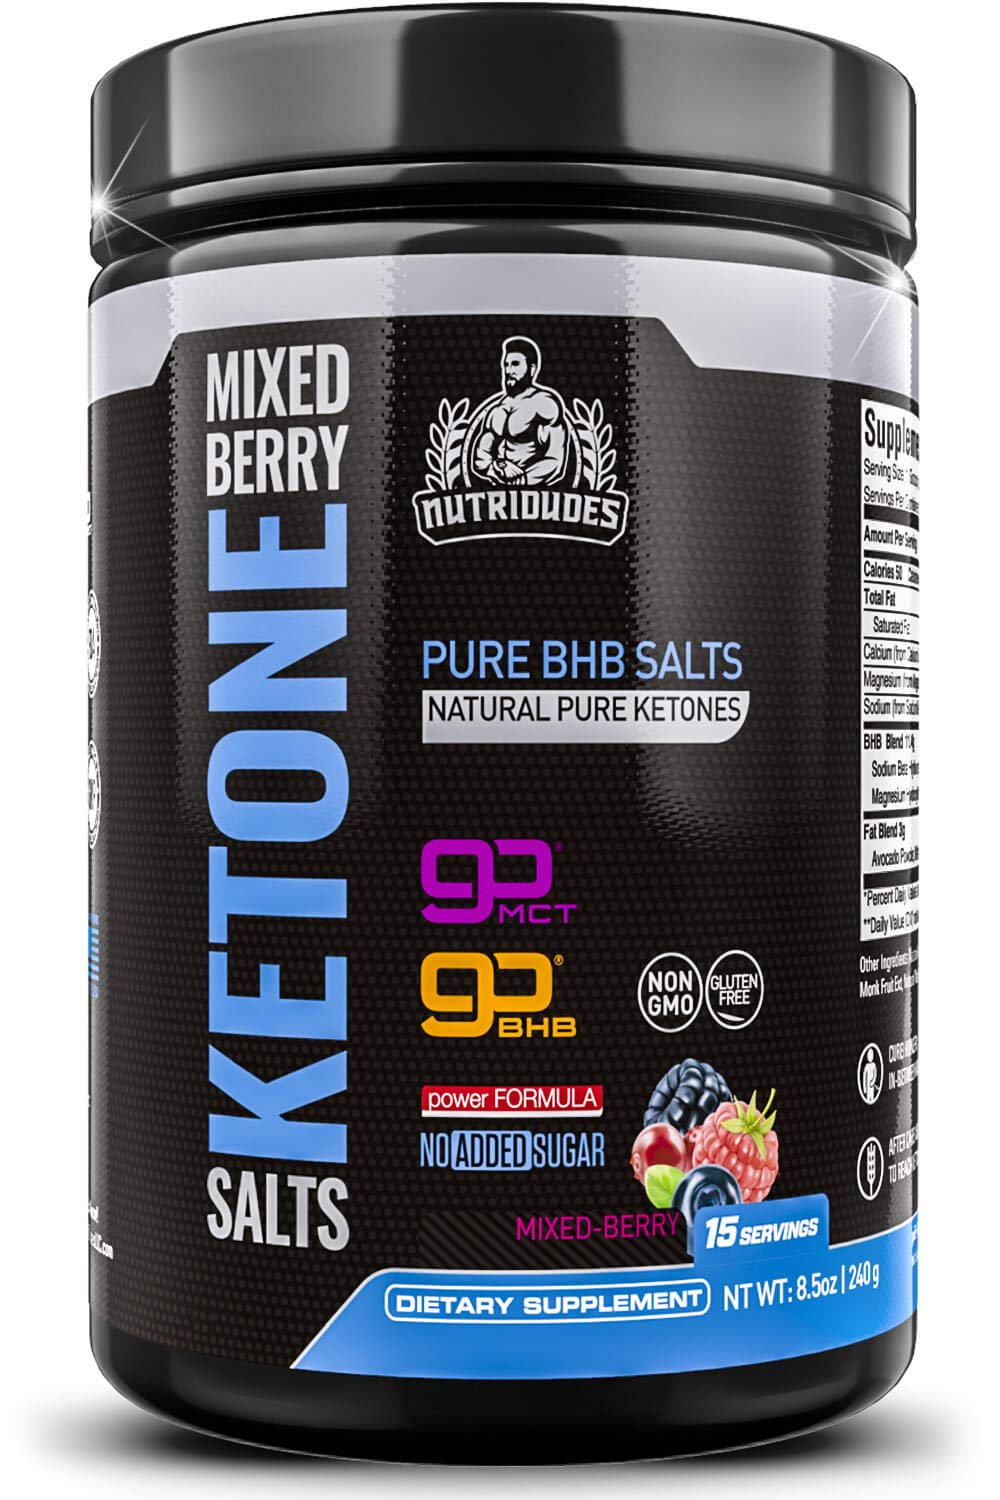 NutriDudes Exogenous Ketones Supplement Drink - BHB Powder for Keto Diet - Quick Ketosis, Appetite Suppression, Boost of Energy, and Focus Using Beta-Hydroxybutyrate Salts (Mixed Berry) by NutriDudes